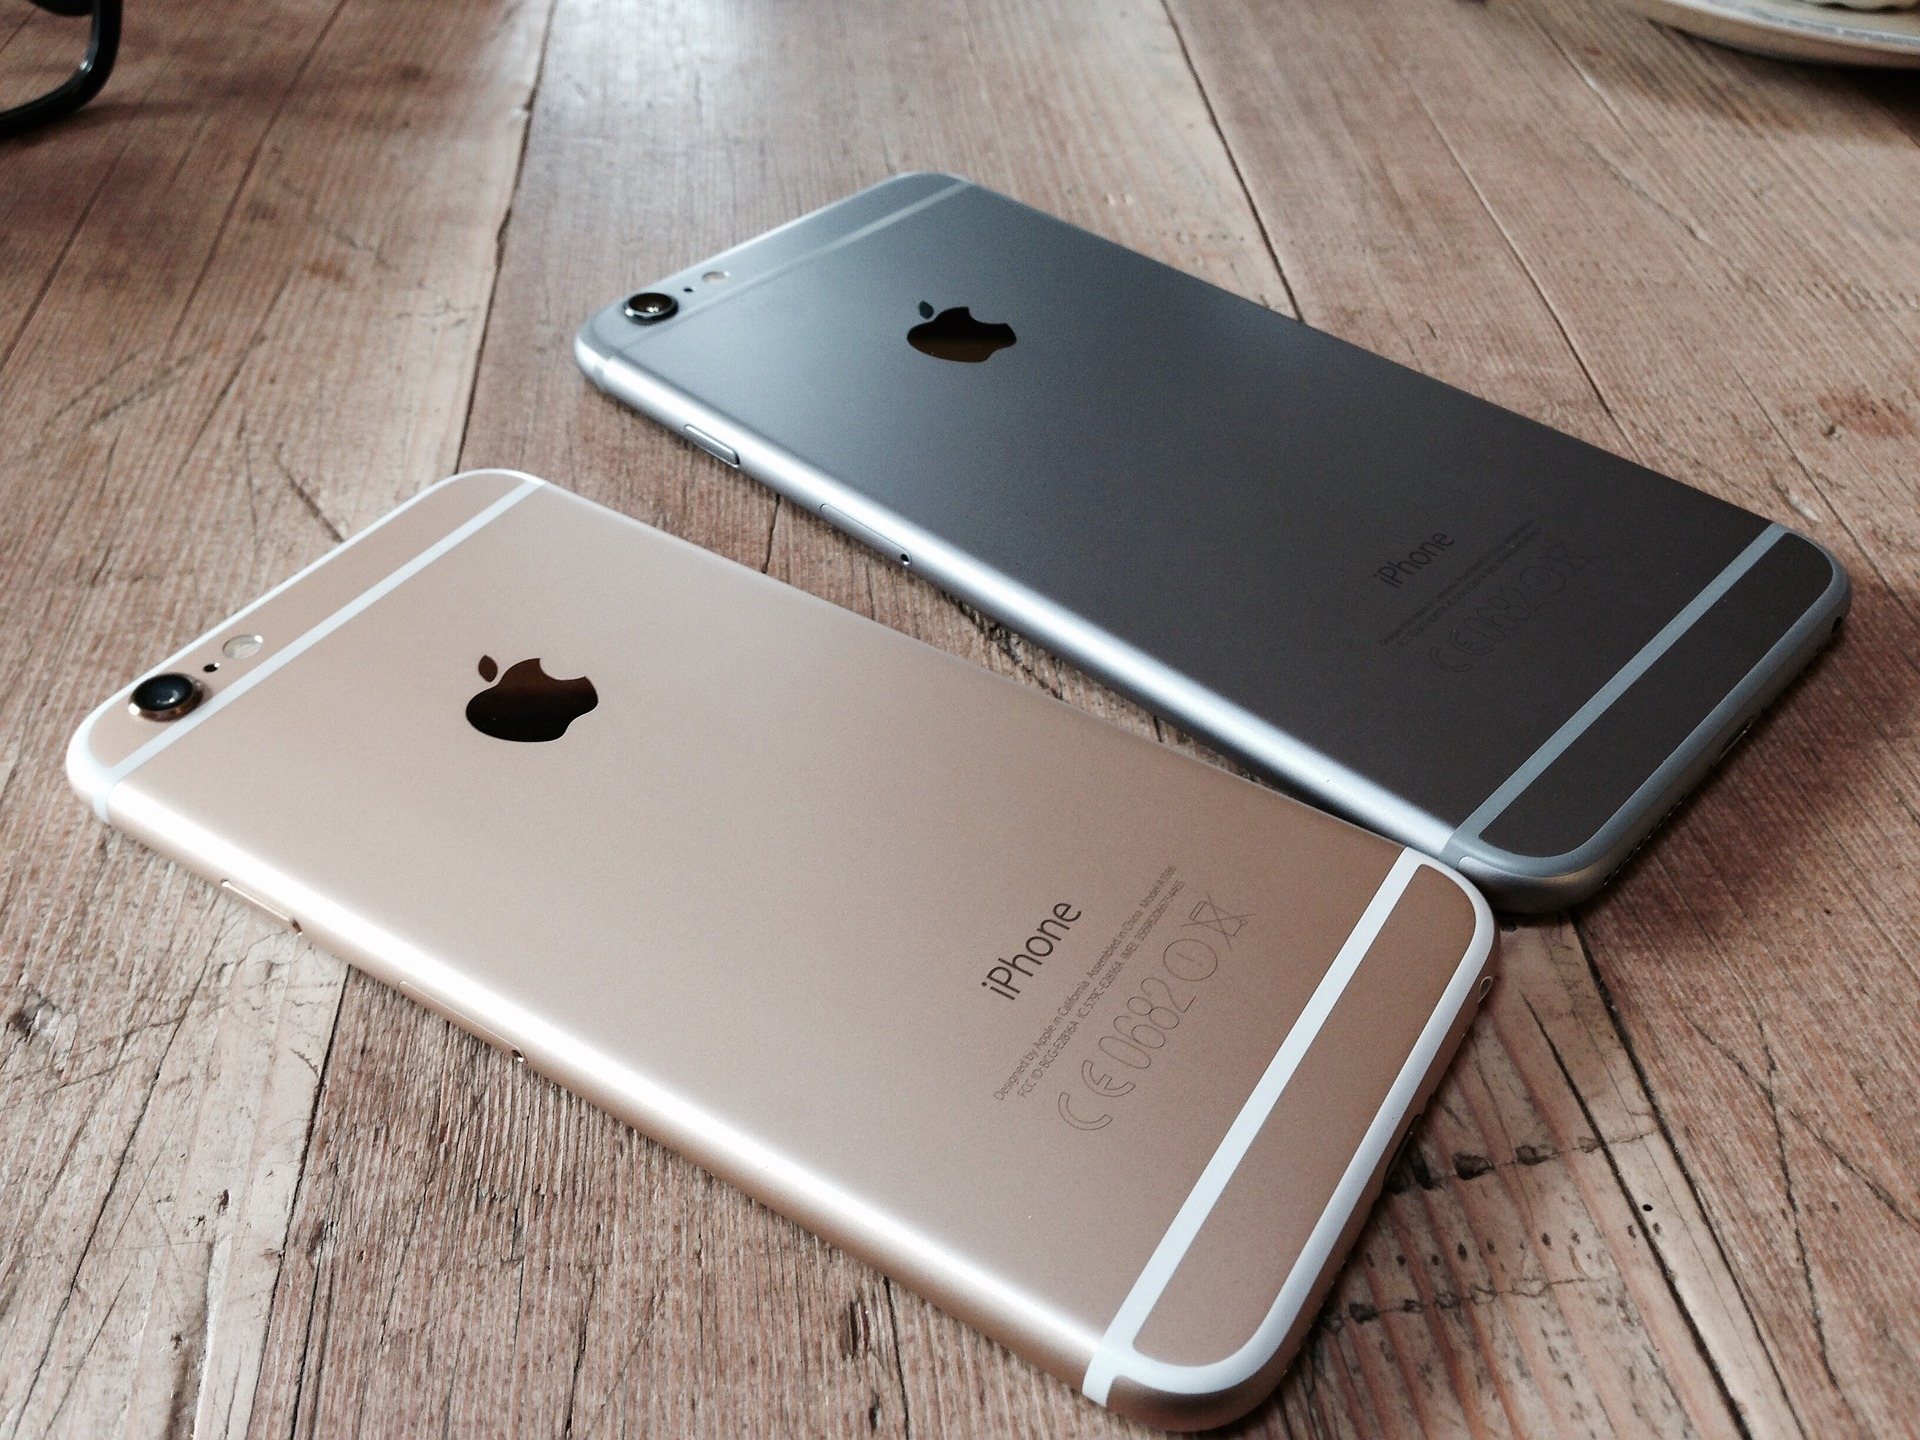 Apple plans to launch iPhone 5se and iPad Air 3 in March